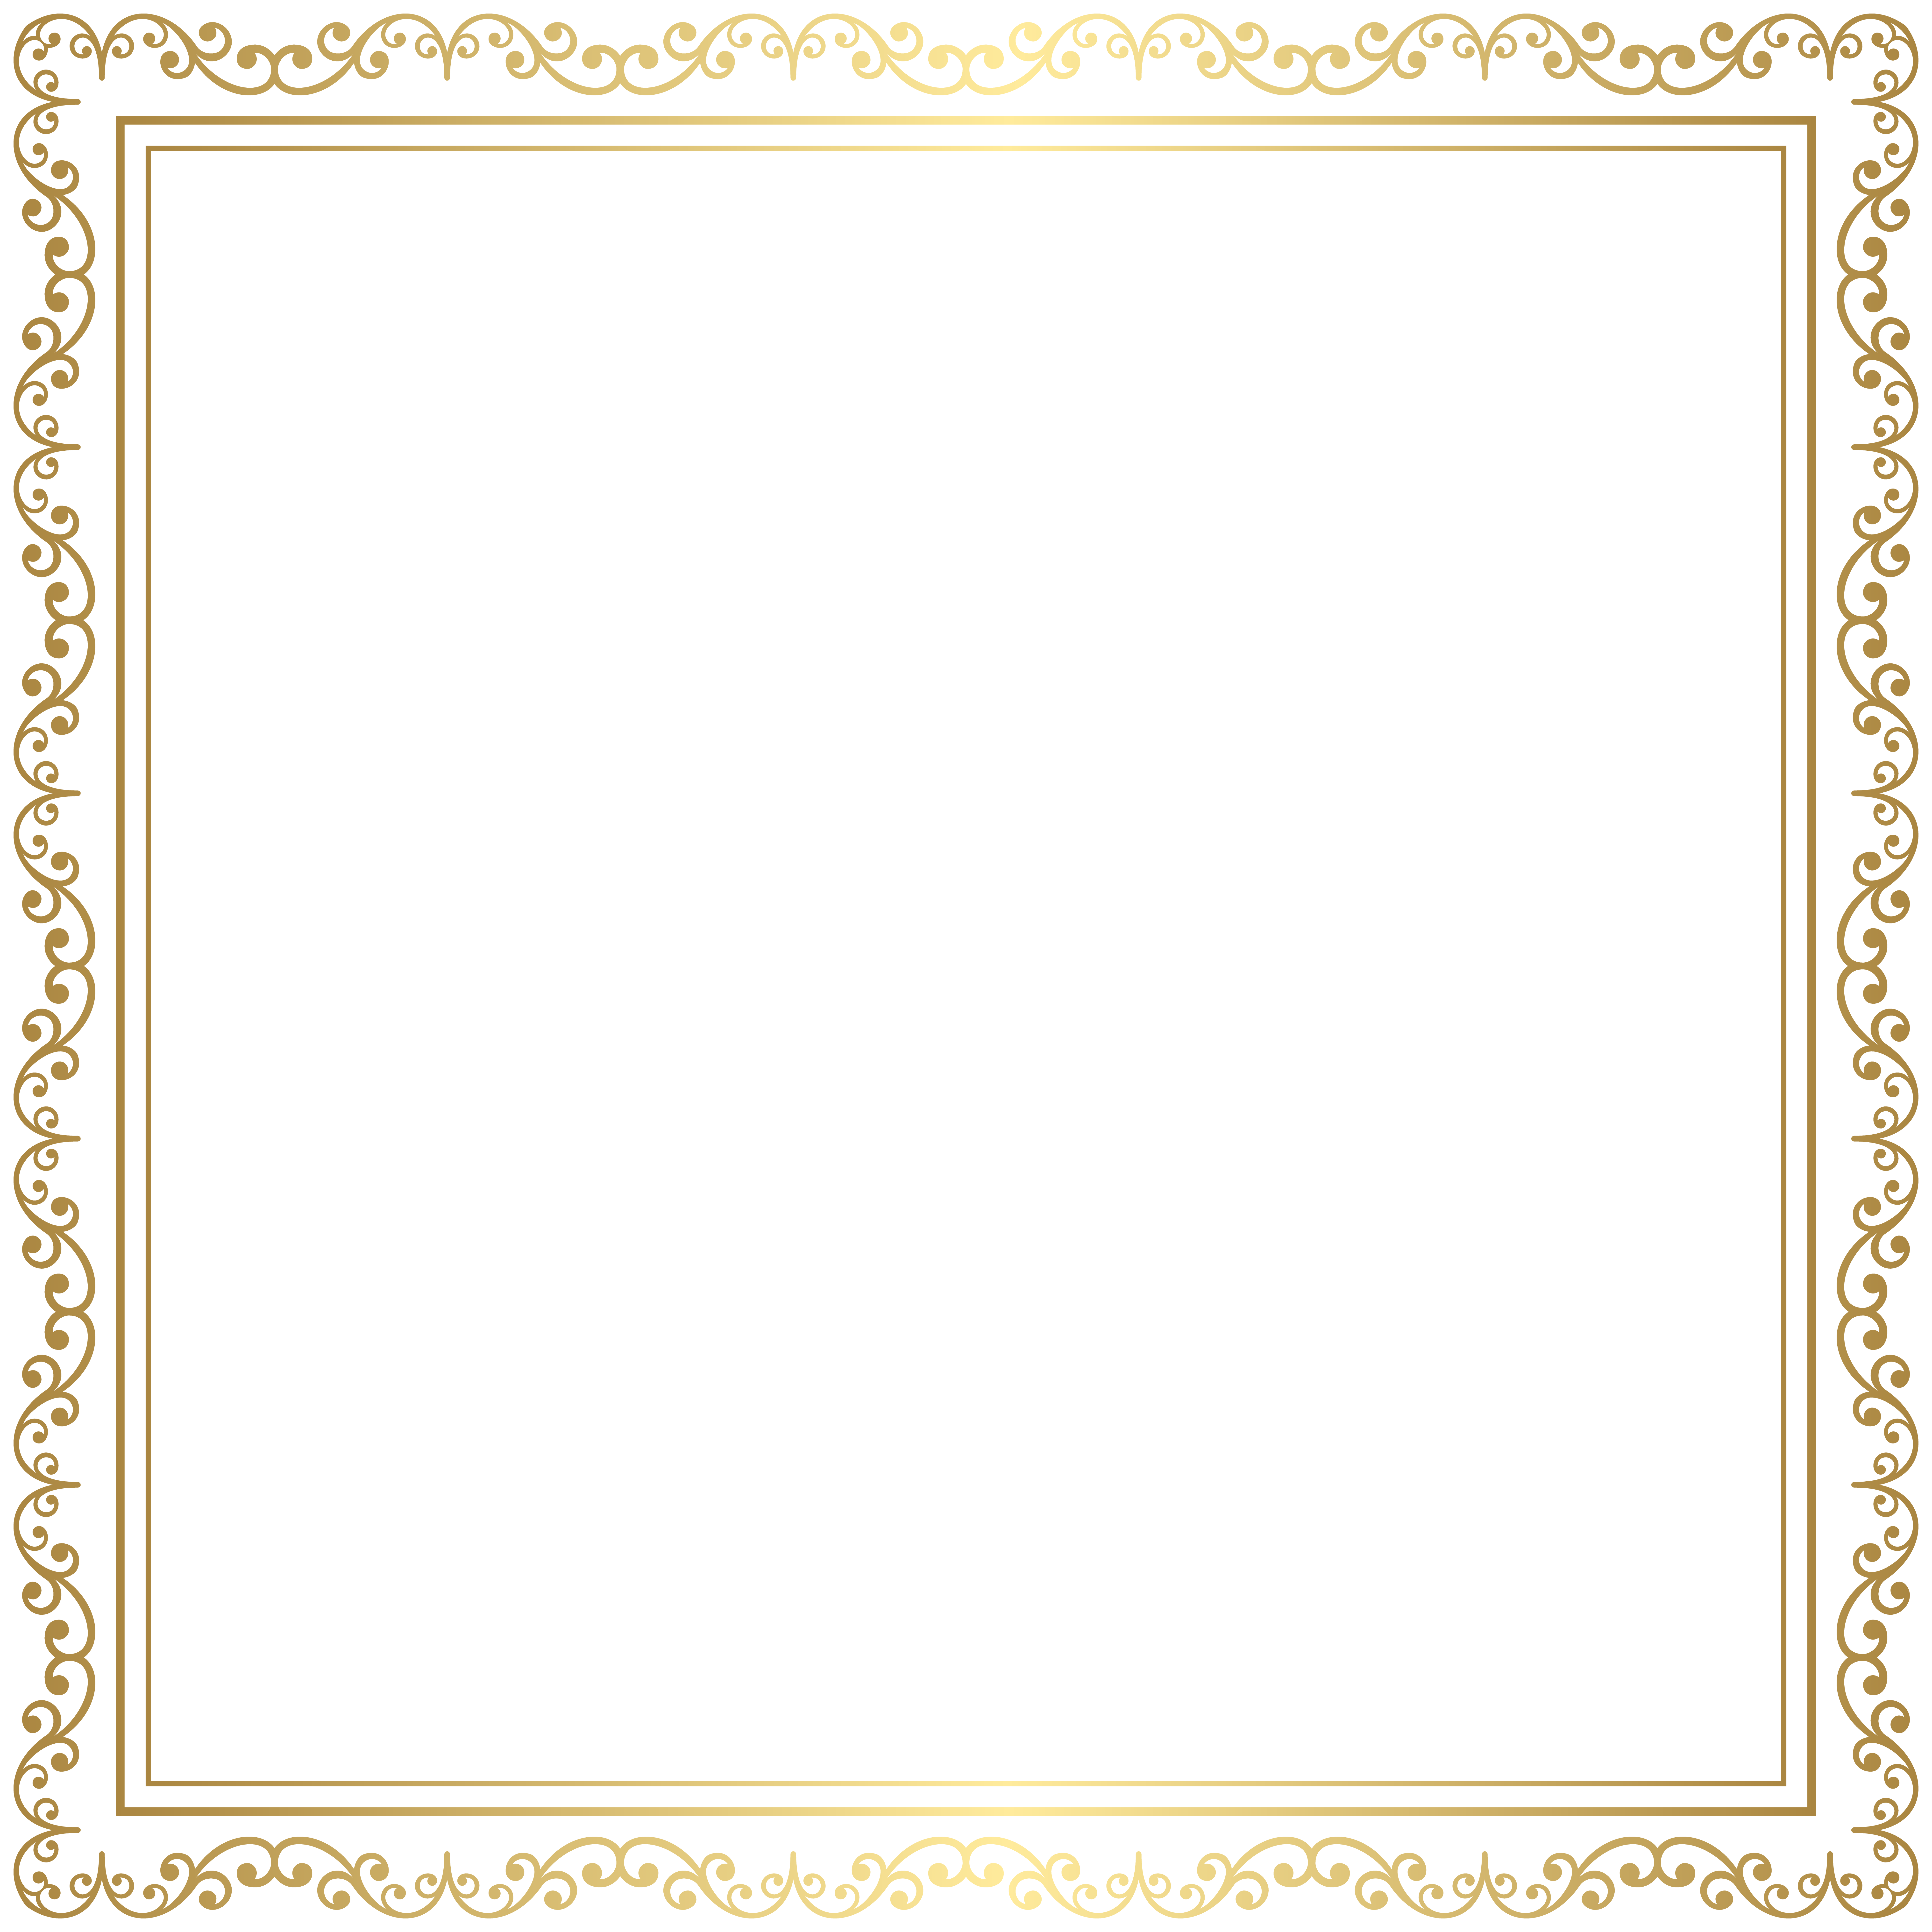 Gold frame transparent background clipart images gallery for free.